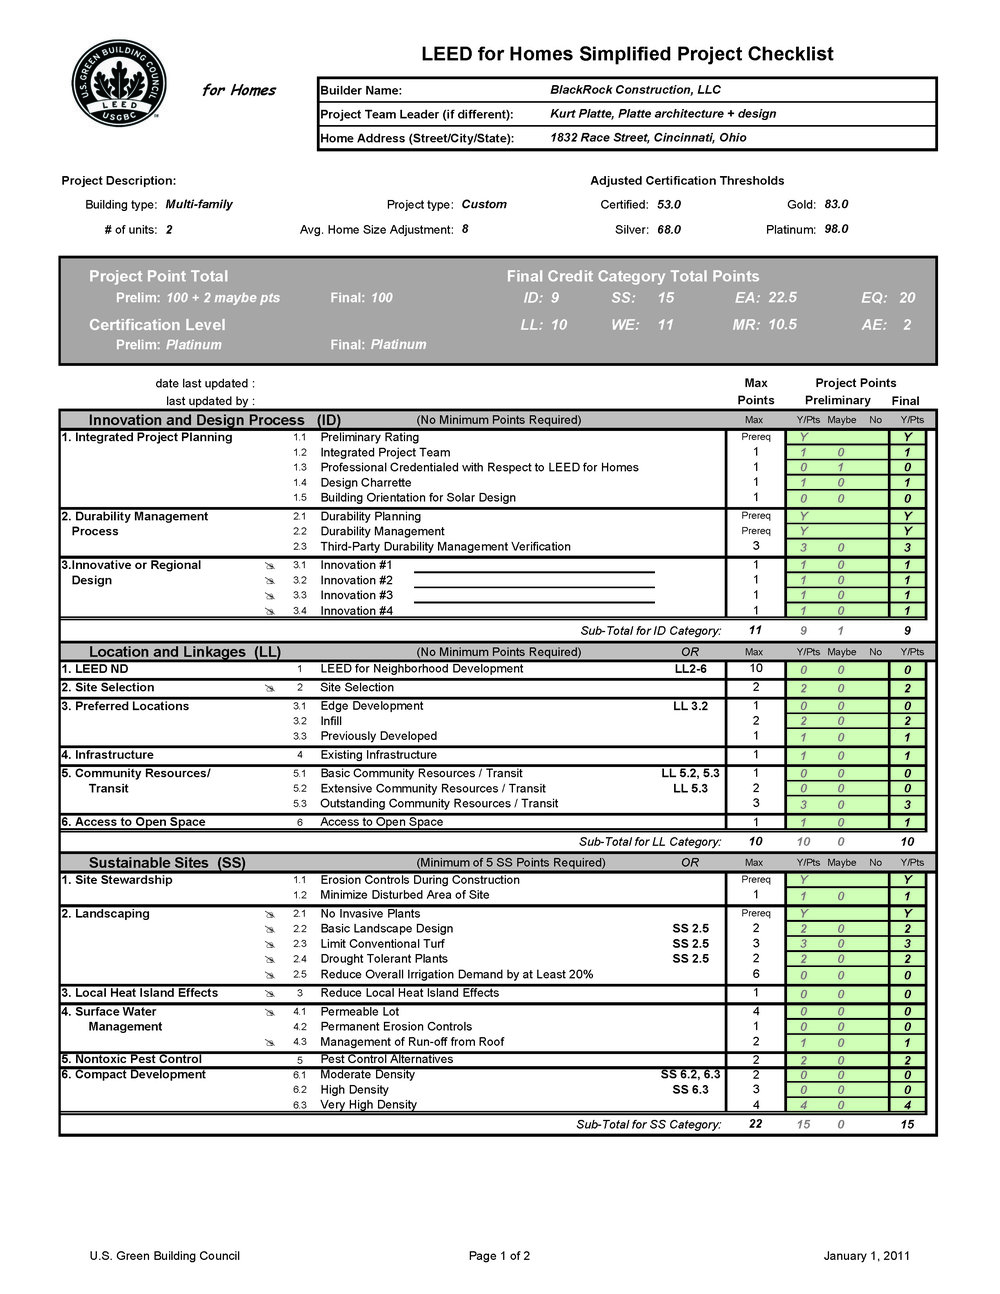 Hudson LEED Homes 2-page Checklist_Page_1.jpg